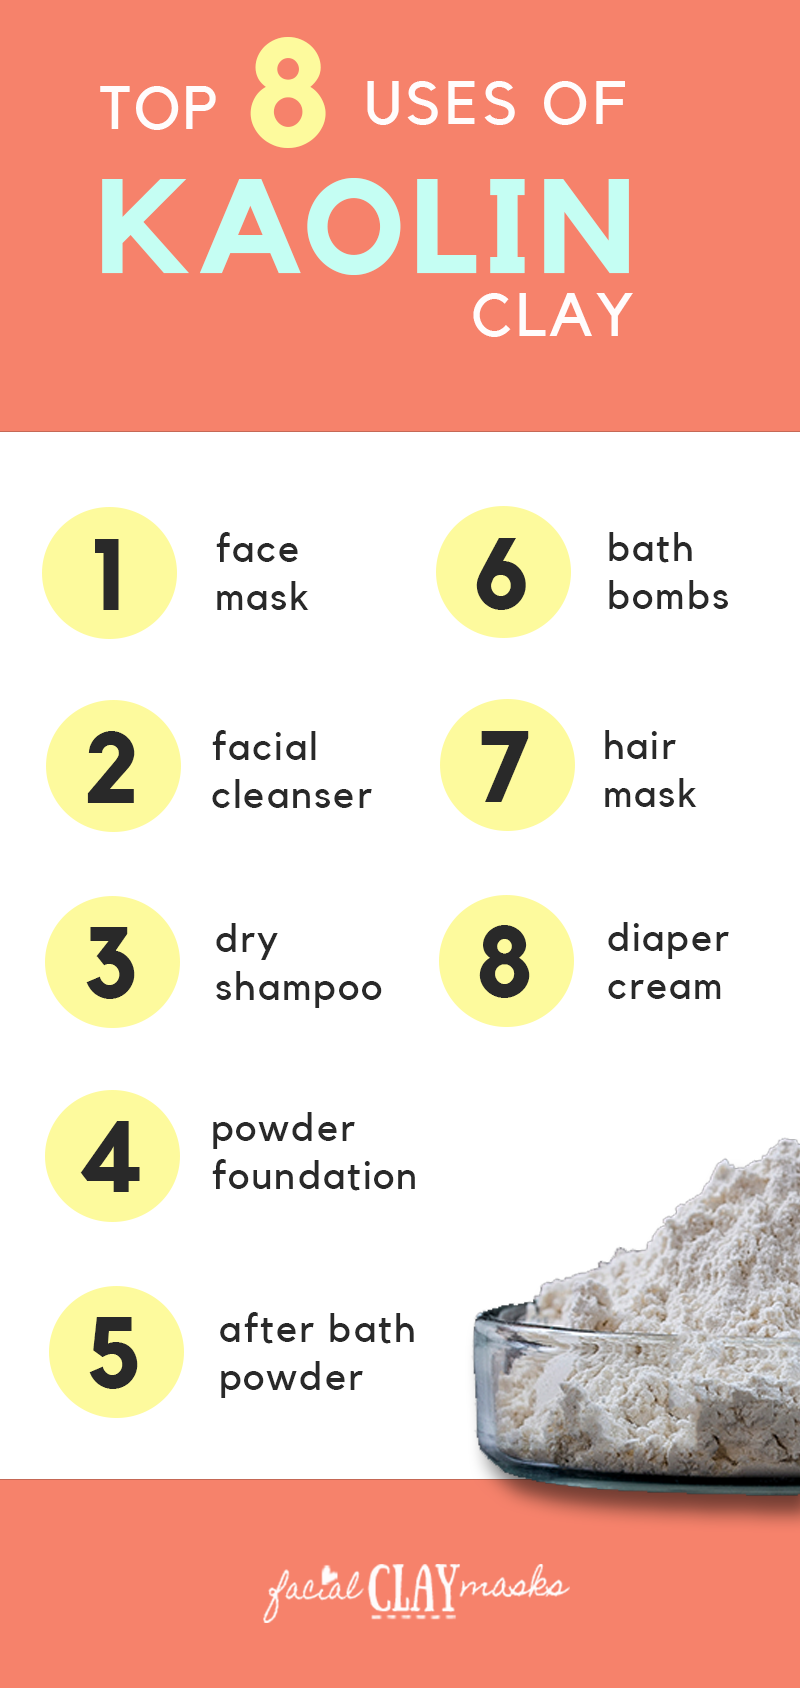 Photo of Top 8 Uses of Kaolin Clay